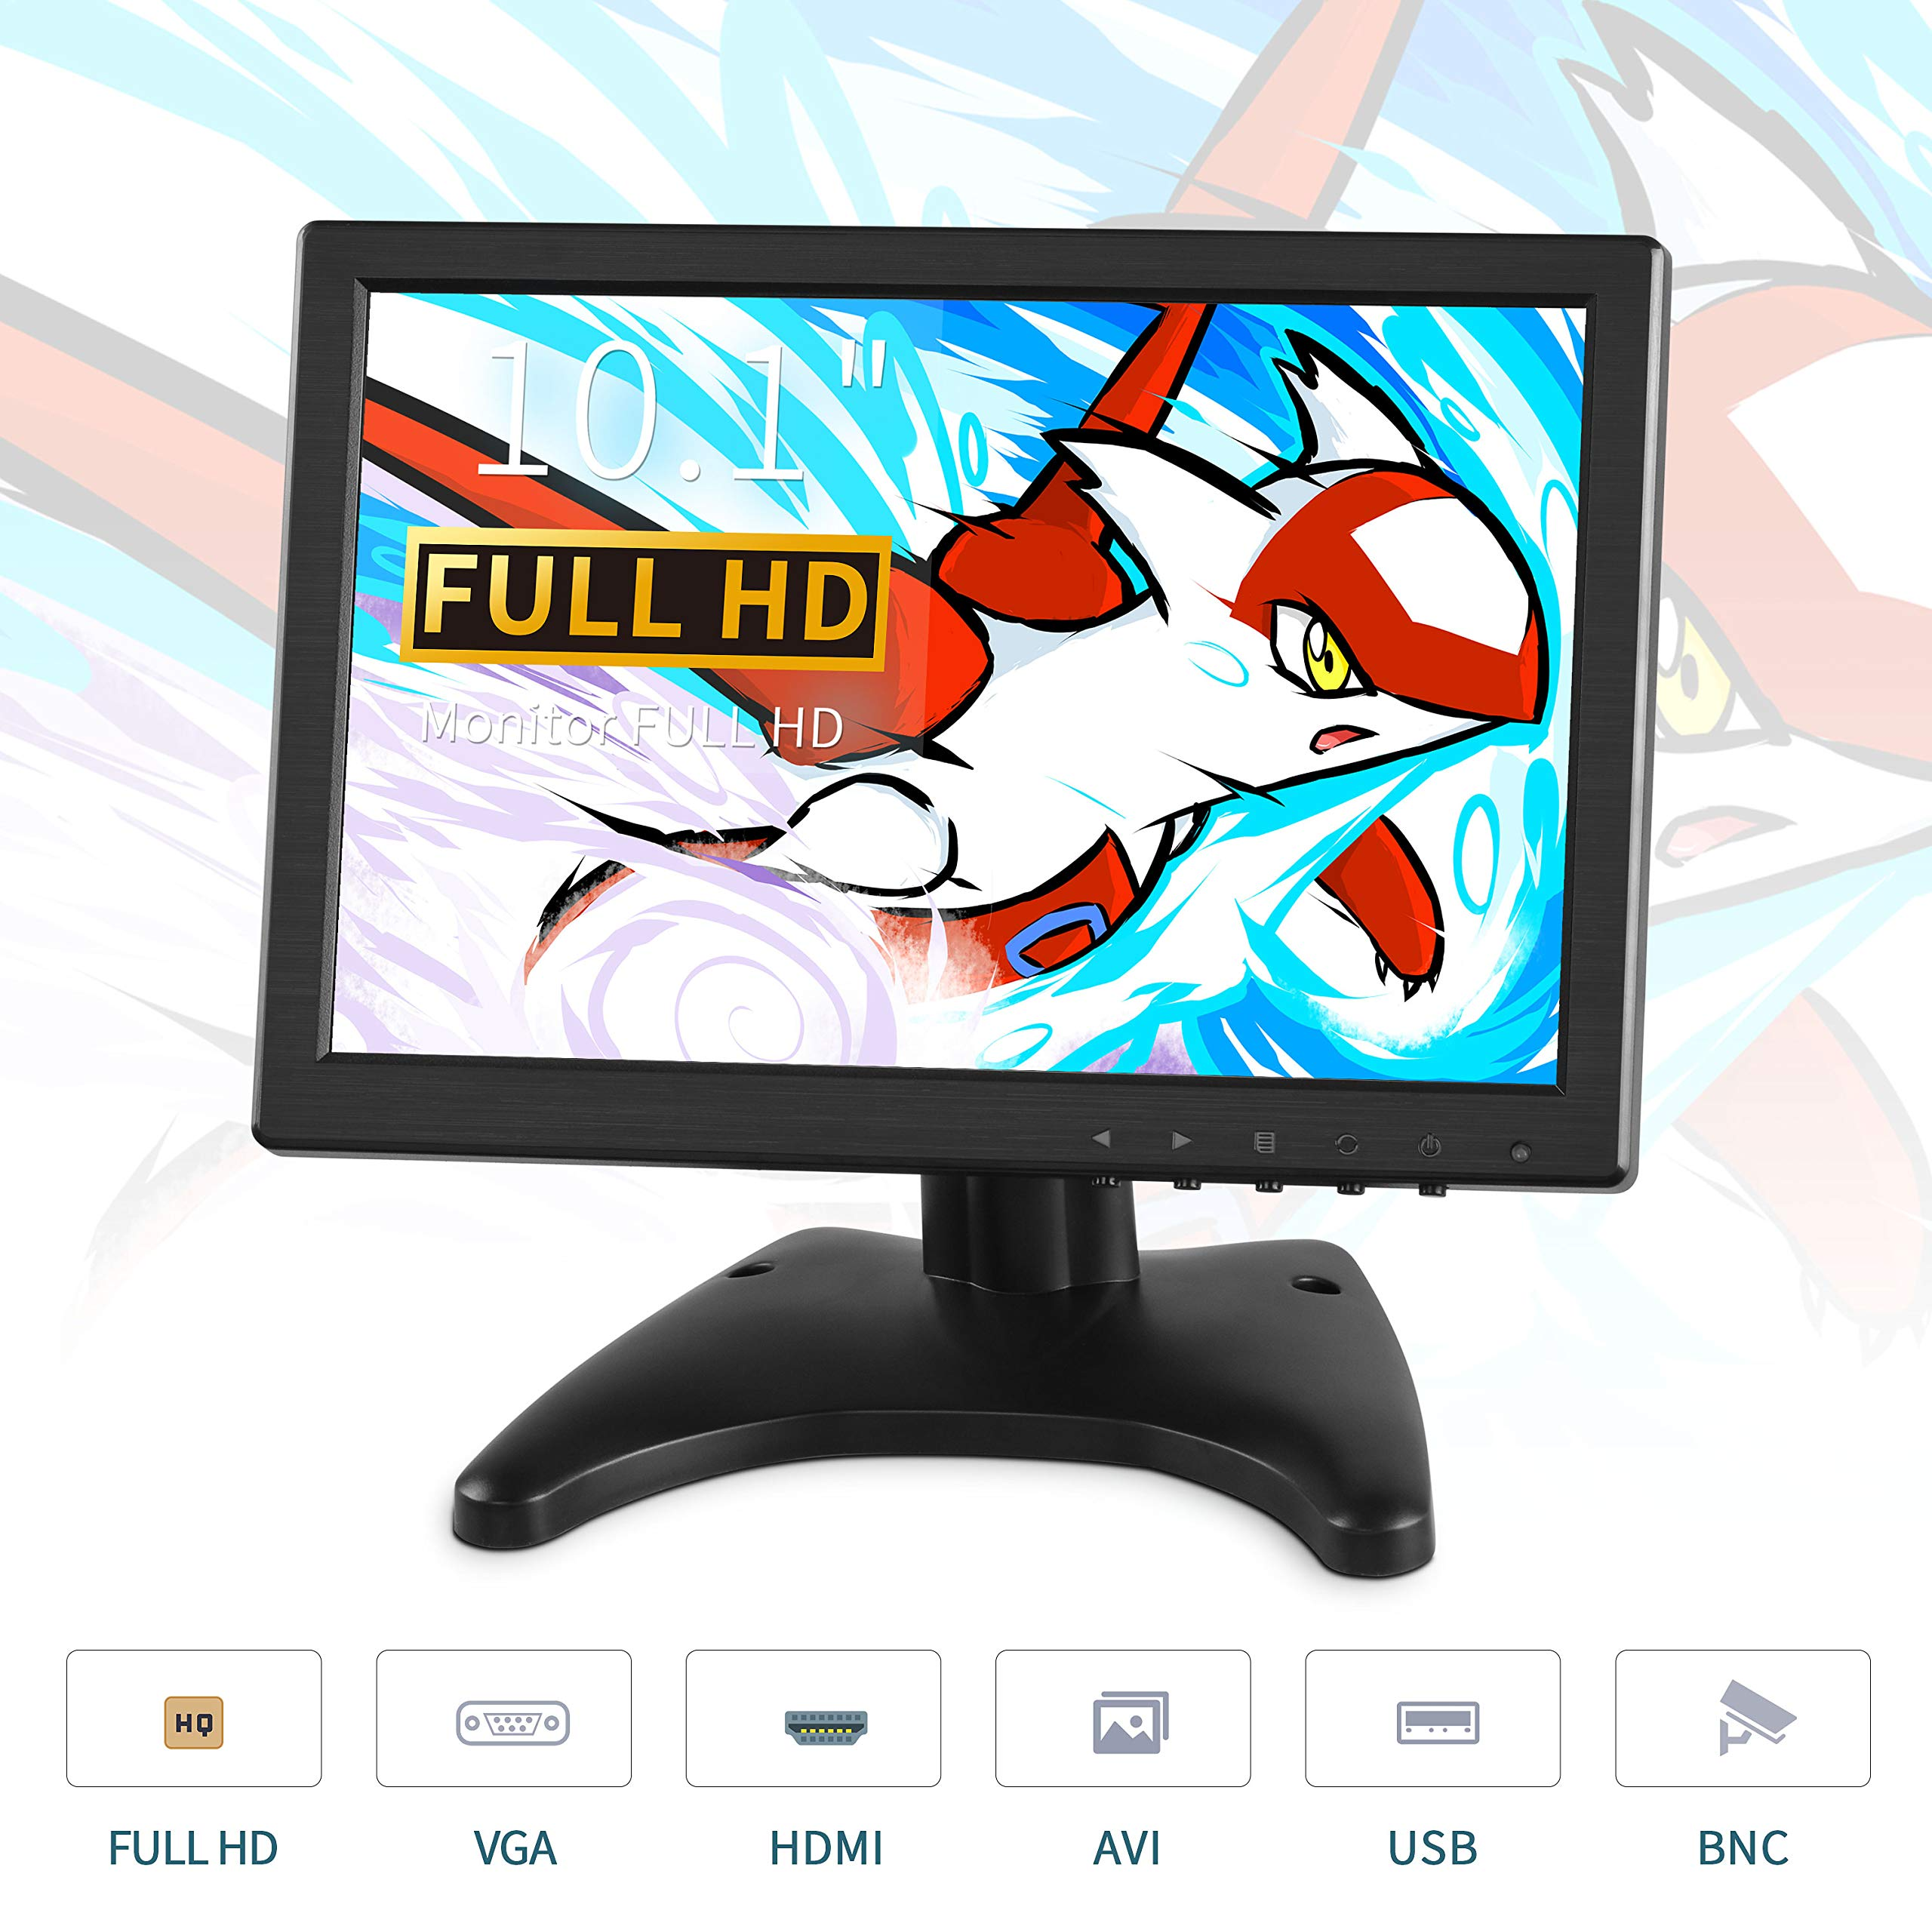 TOGUARD IPS Portable Monitor for Laptop 10.1 Inch Computer Display Screen 1920x1200 HD with AV/VGA/HDMI/BNC/USB Output for PC CCTV Camera Security Gaming Monitor at 178° Wide Viewing Angle by TOGUARD